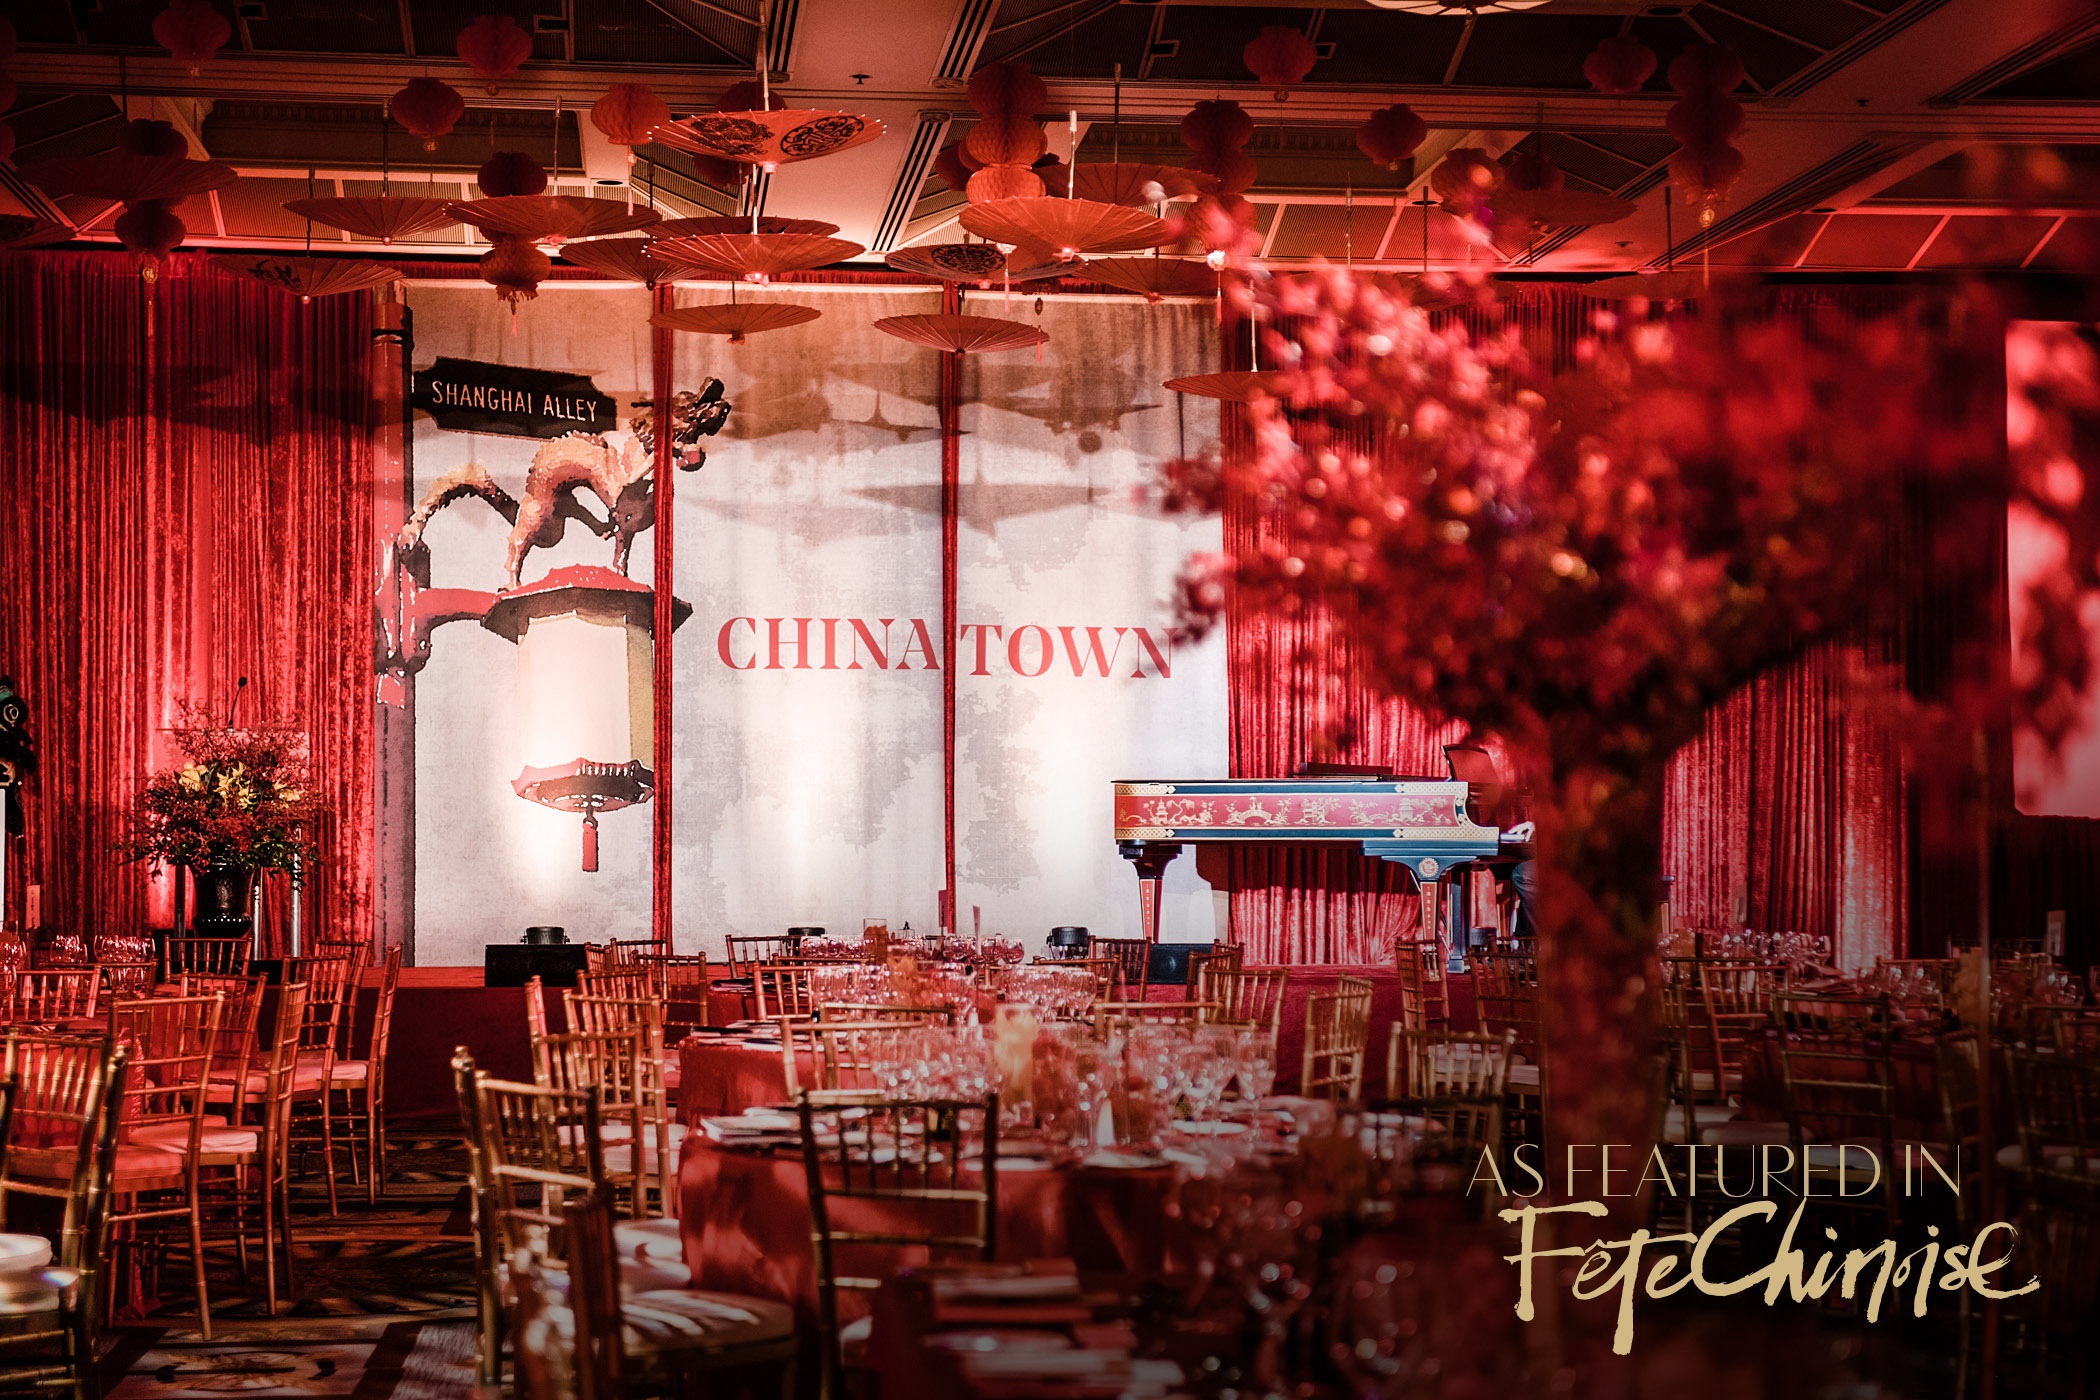 030_Vancouver_Chinatown_Foundation_Gala_2016 copy.jpg